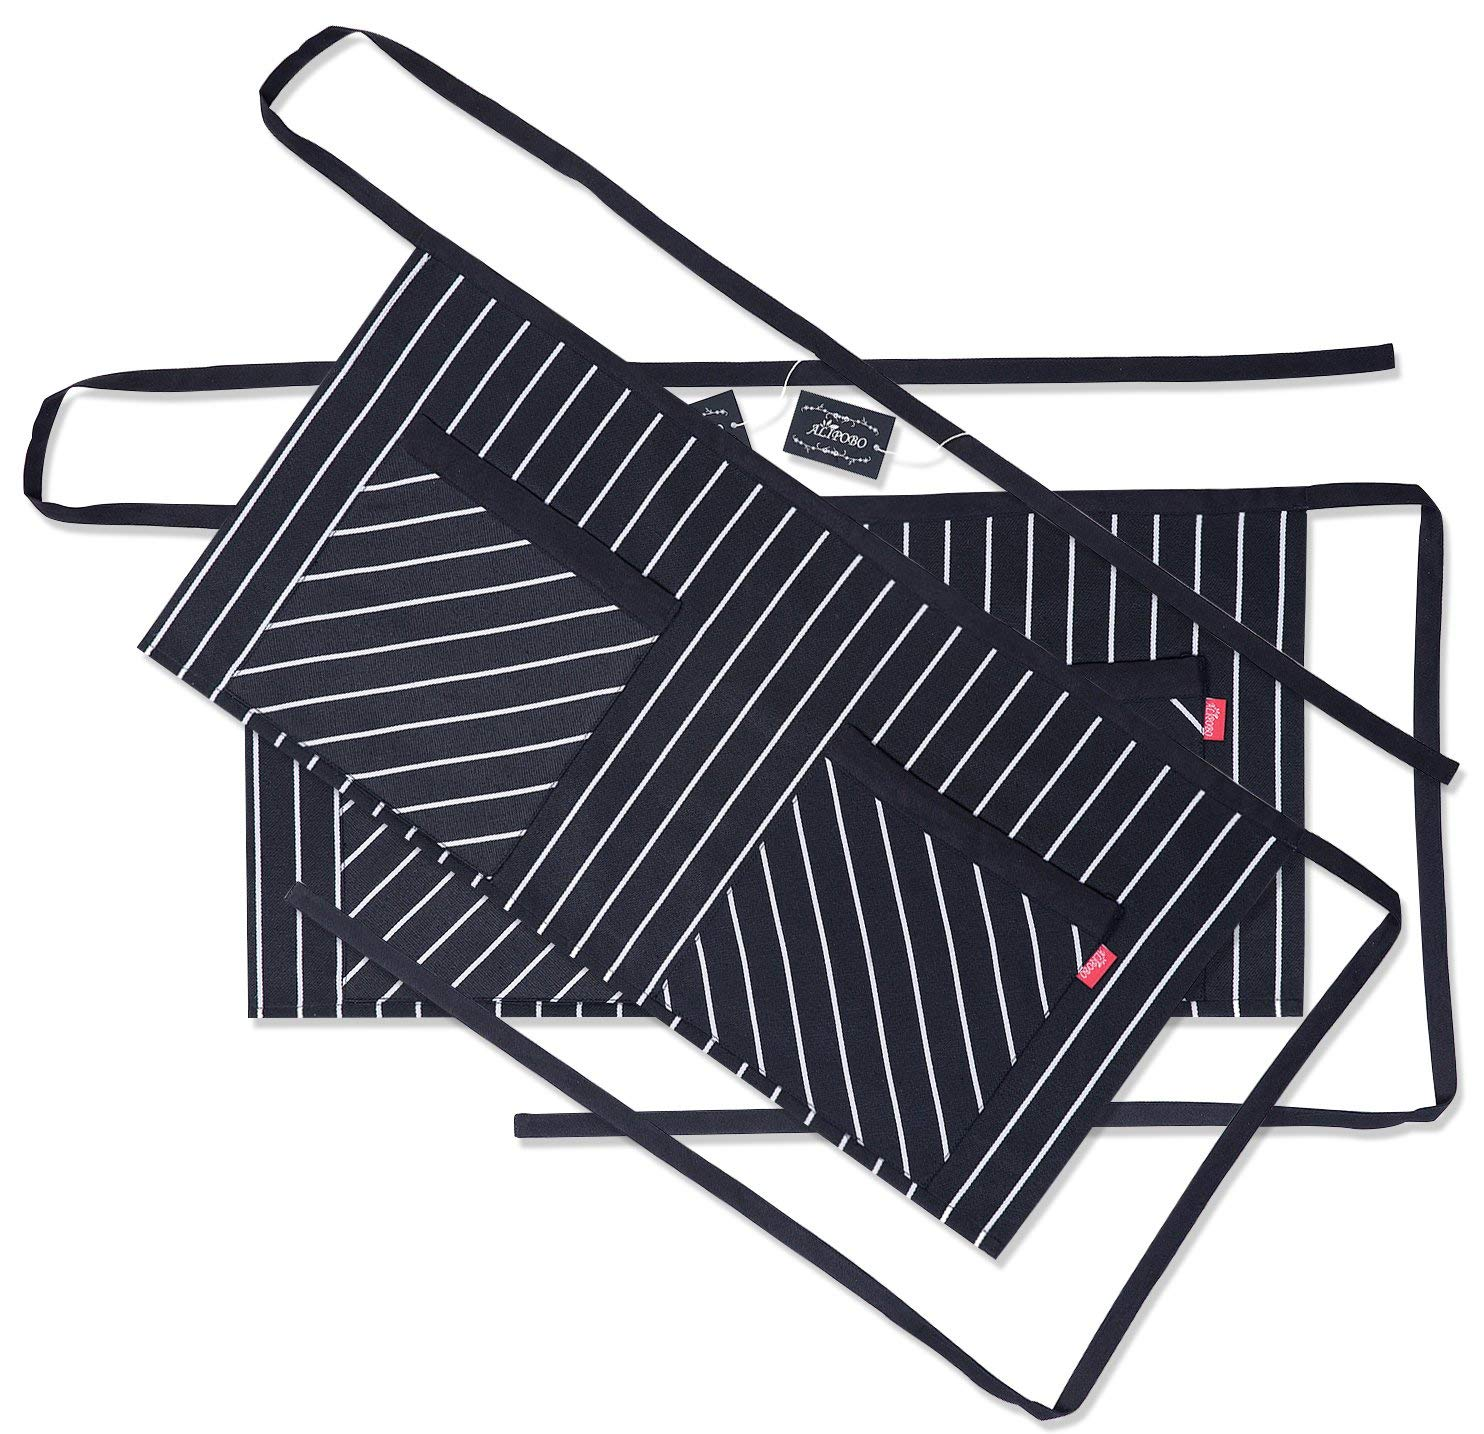 ALIPOBO Waist Apron with 2 Pockets (2 Pack, 25.2 x 13 inches) Restaurant Kitchen Cafe Short Half Aprons for Women, Men, Chef, Server, Waitress, Waiter, Bartender, Black and White Pinstripe